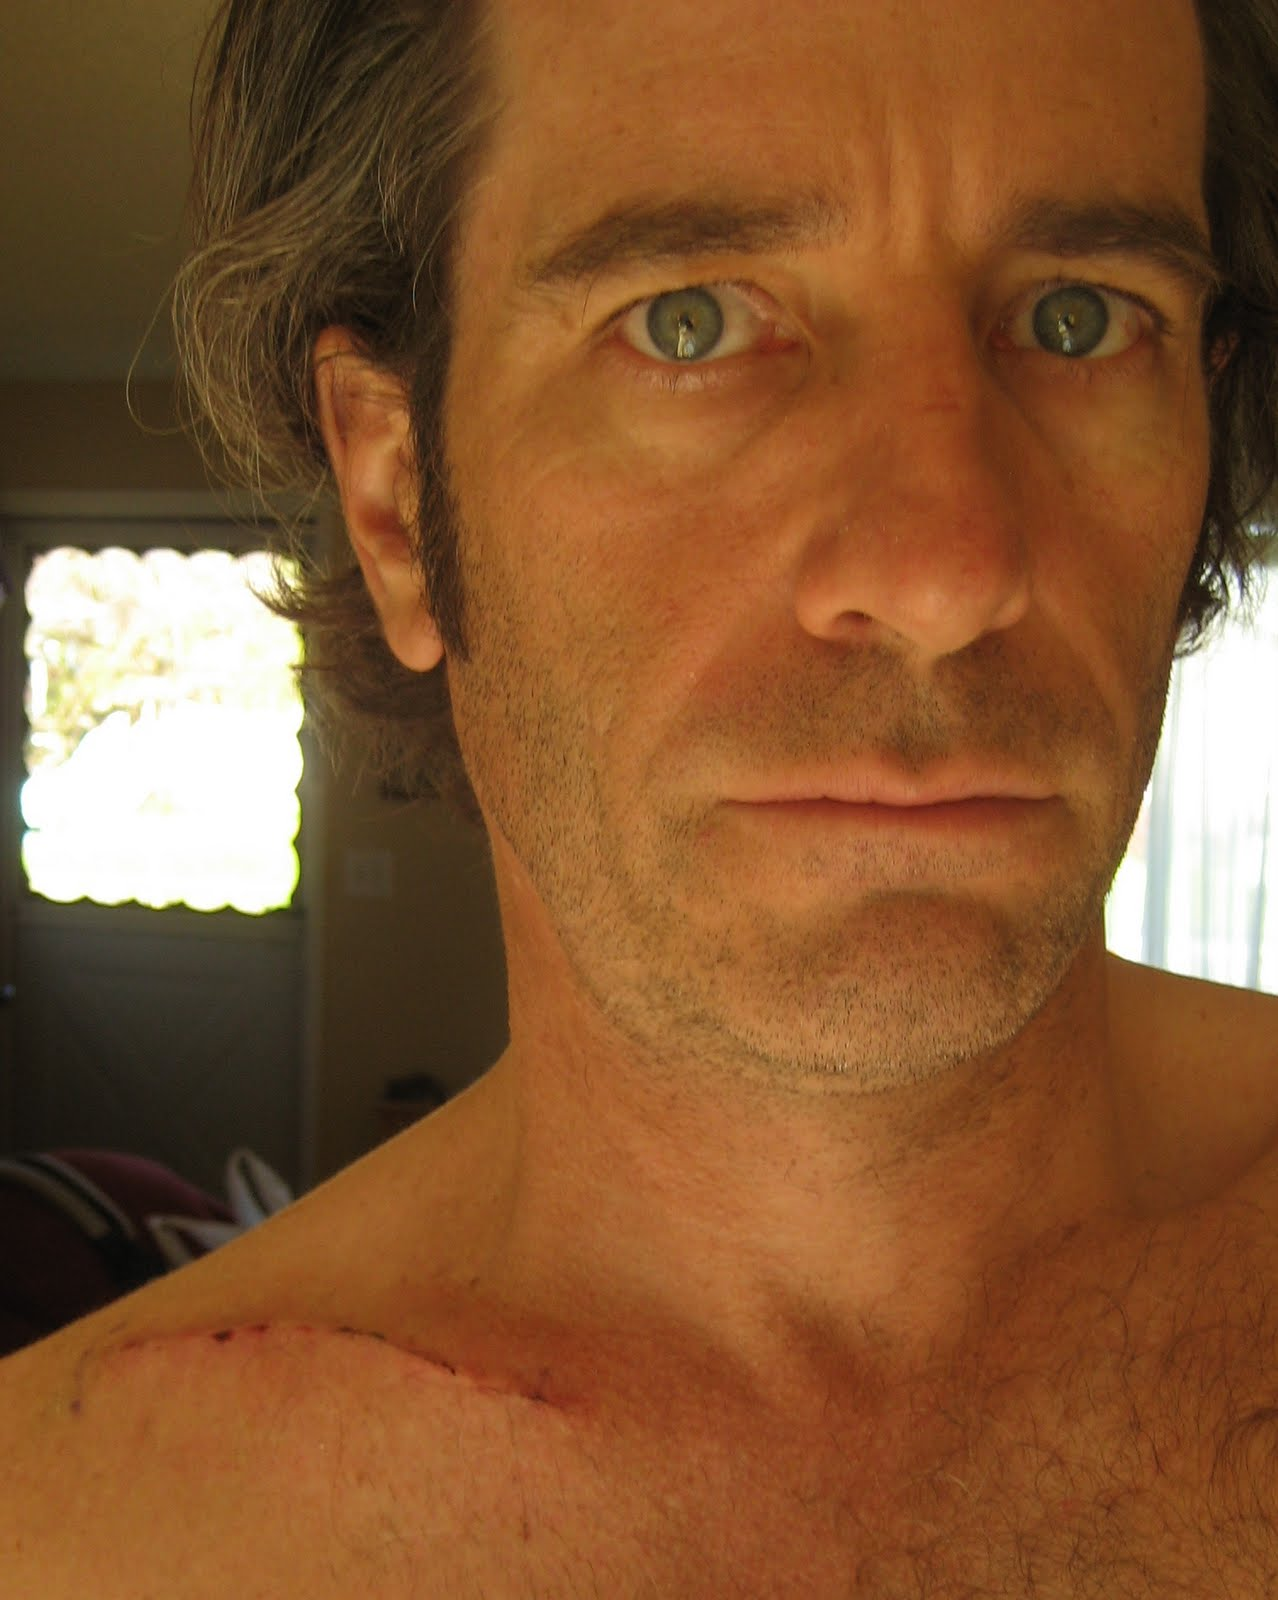 Mike McQuaide: THREE WEEKS (now YEARS) SINCE COLLARBONE SURGERY